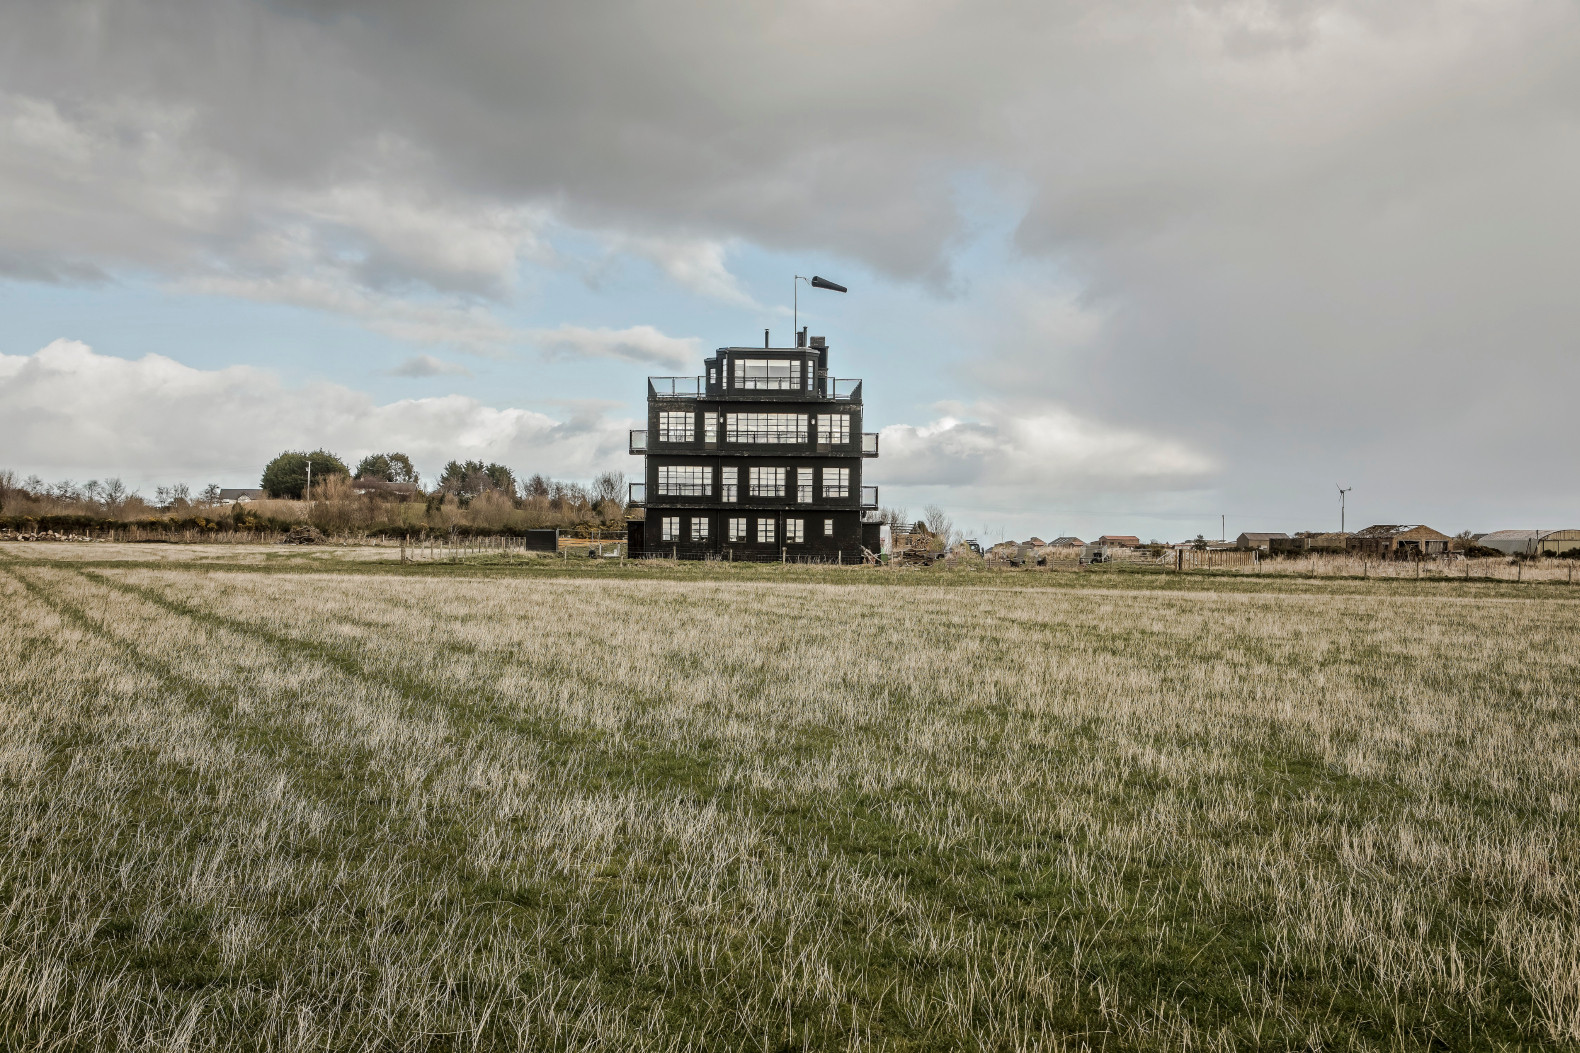 Sleep in this restored WWII air control tower full of historic charm